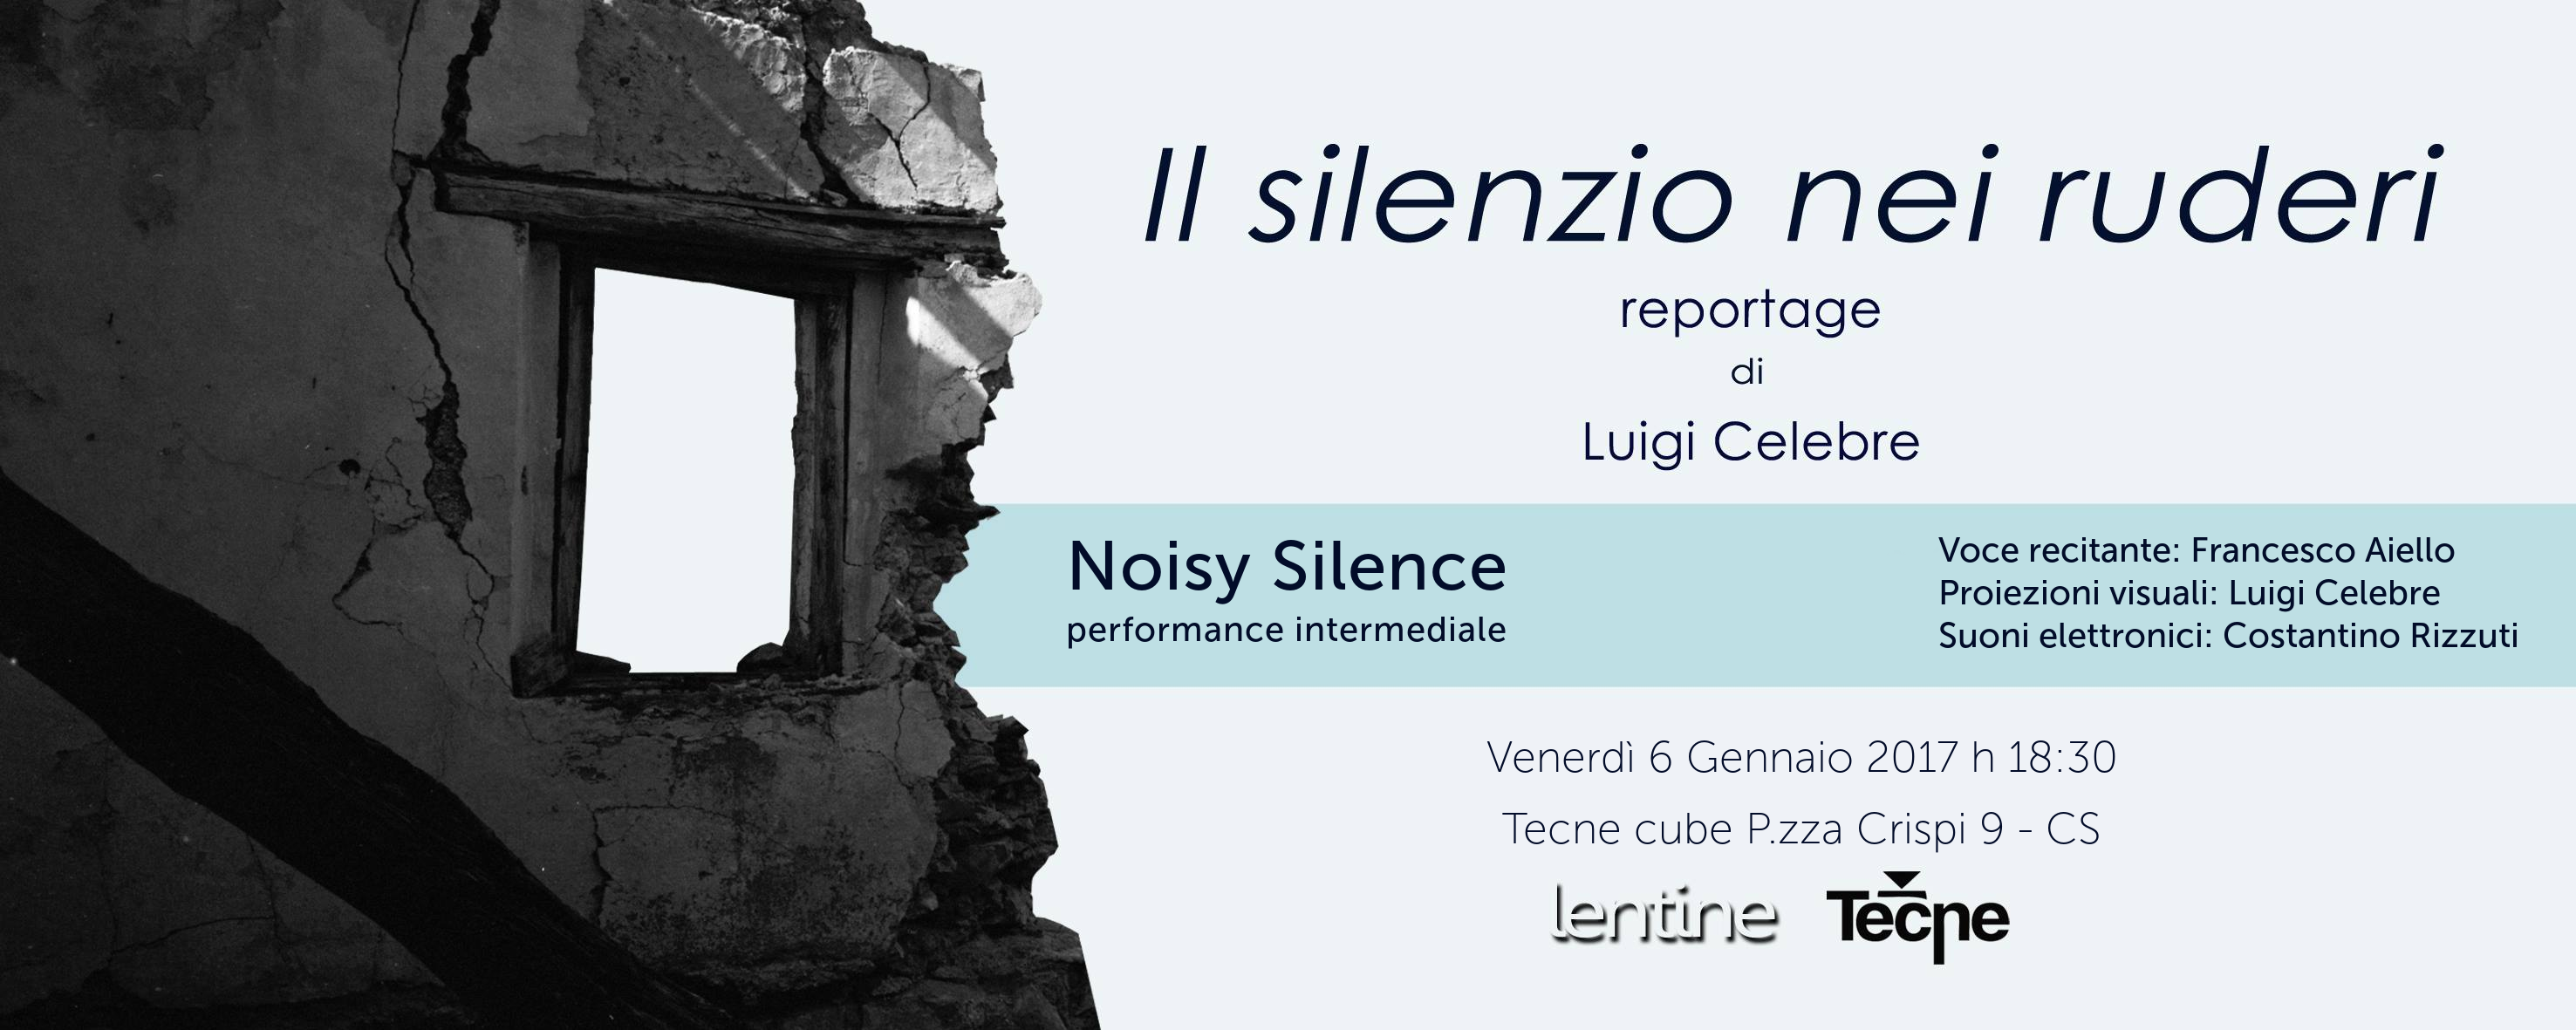 Noisy Silence: a performance of silence, sound and noise